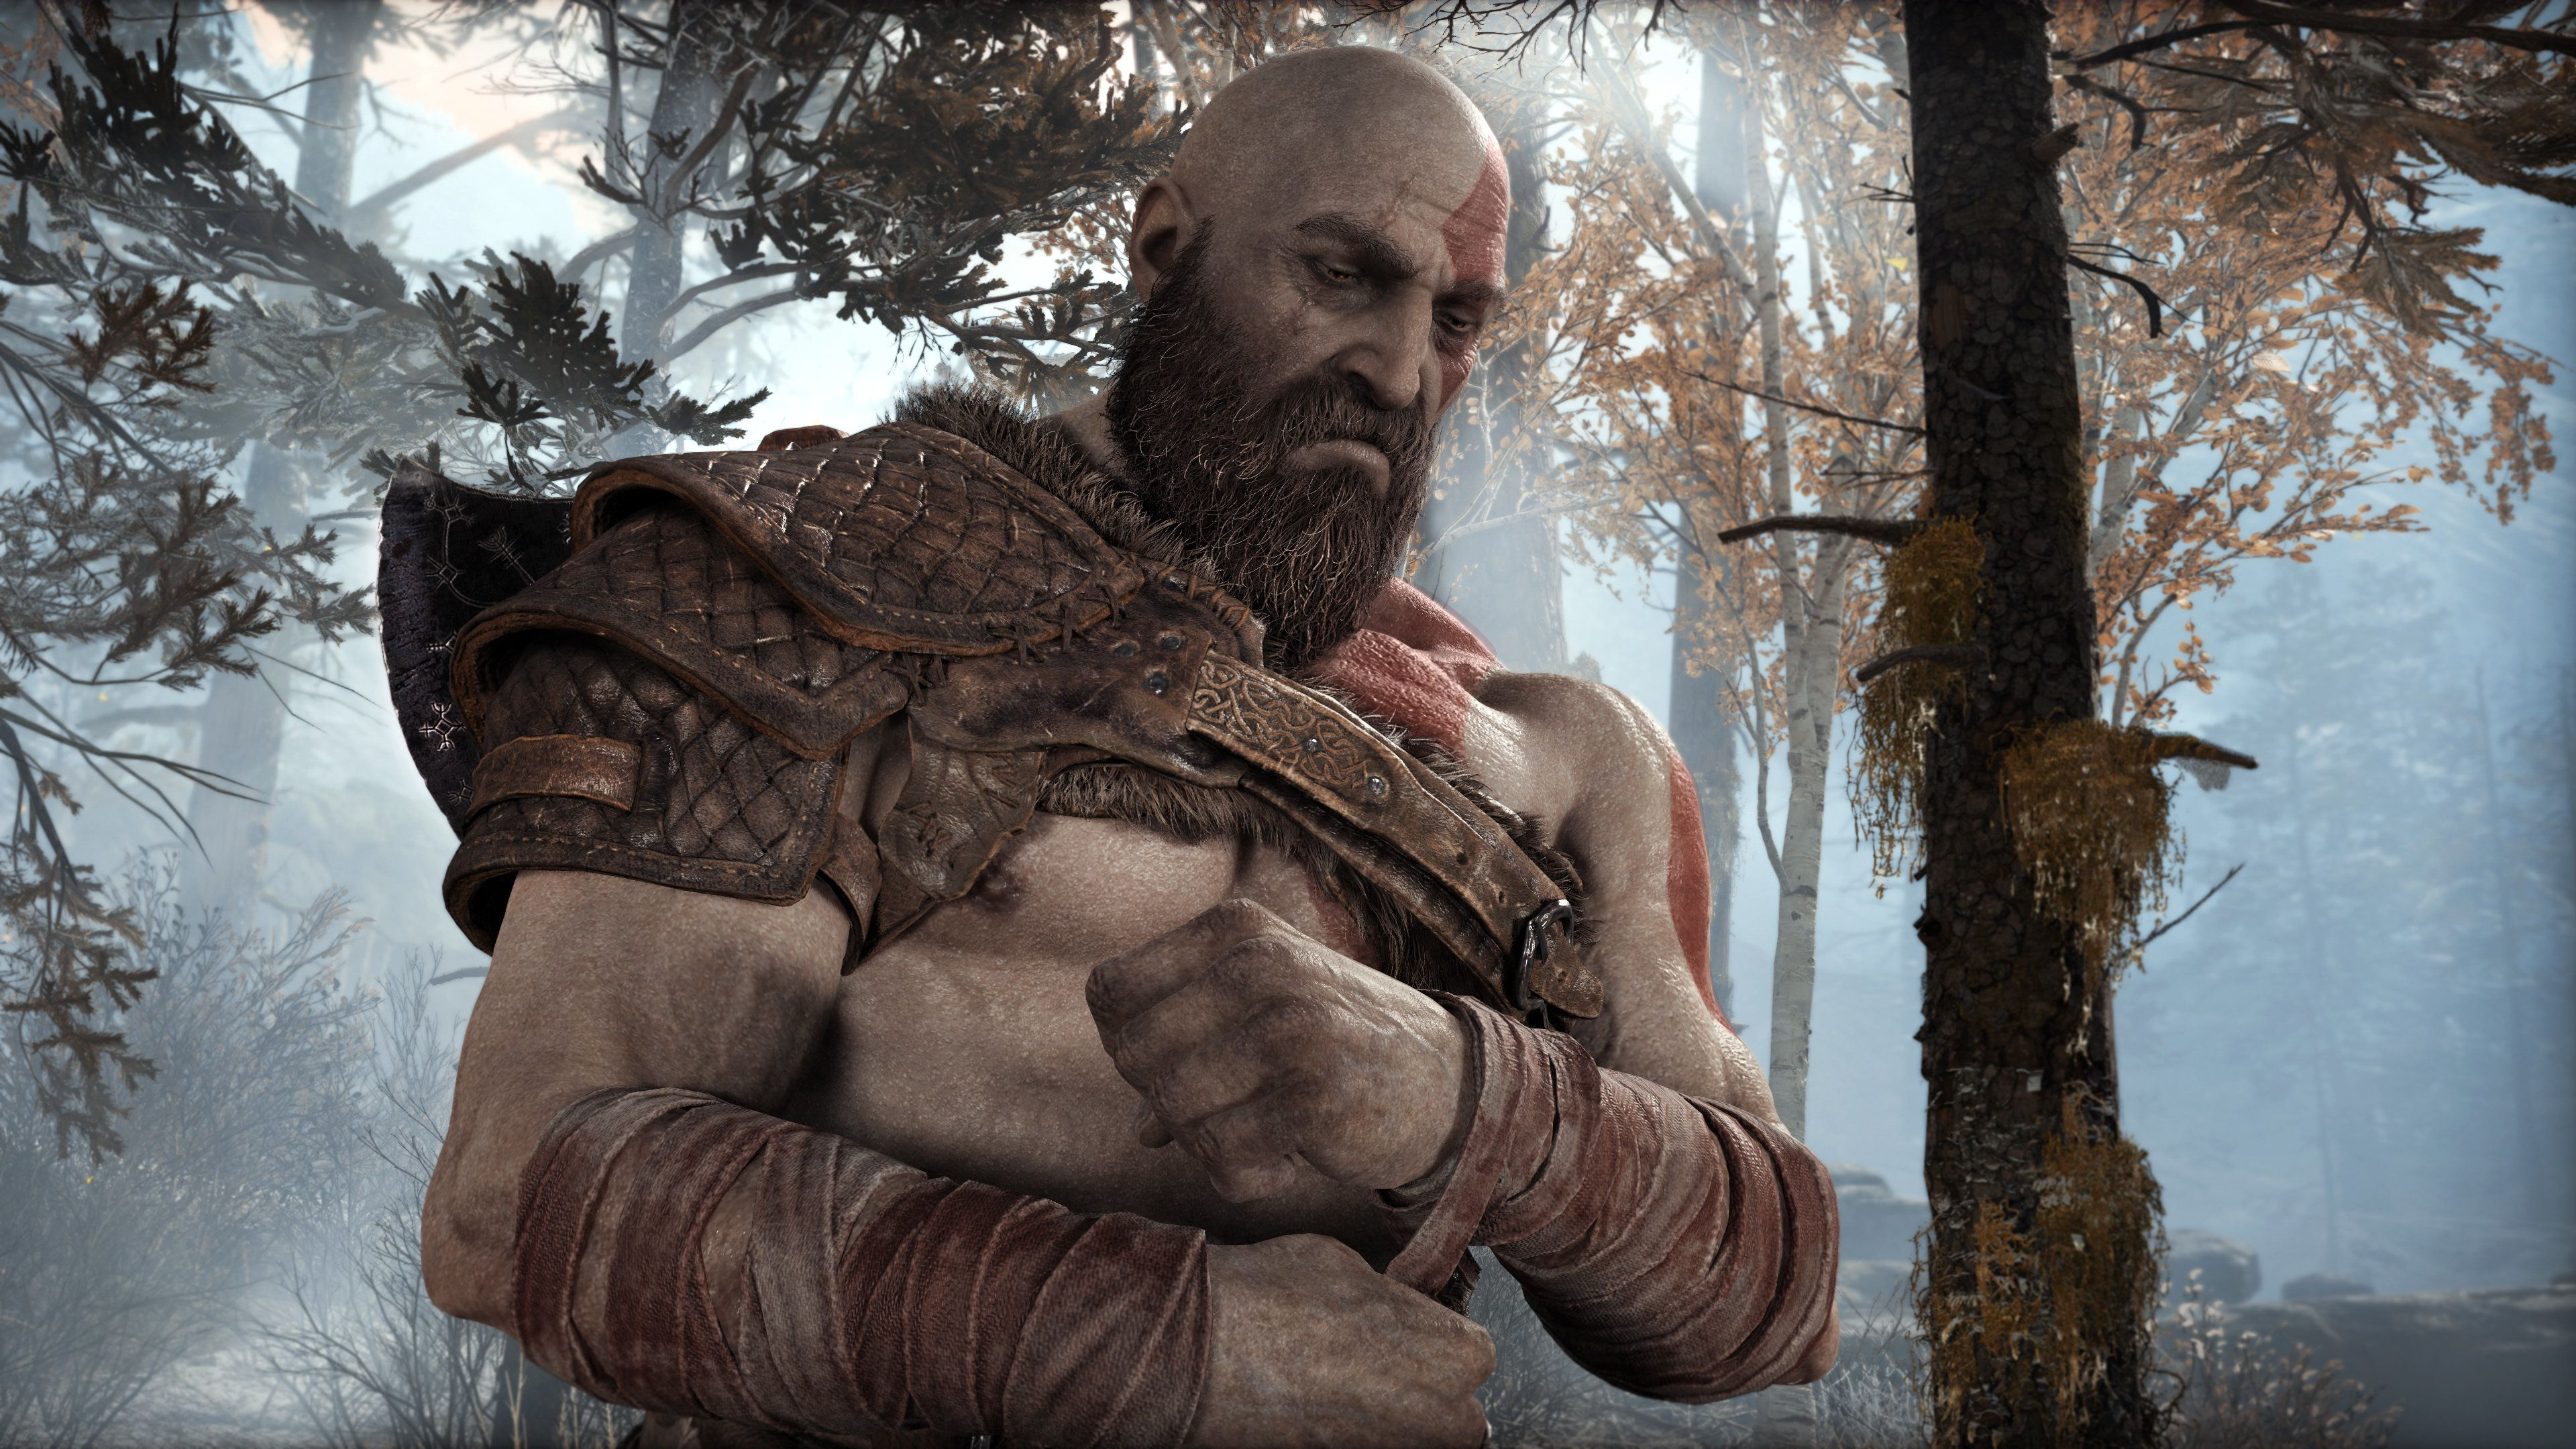 God Of War Review: An Earth-Shattering, Emotional Return For A Gaming Icon - HuffPost